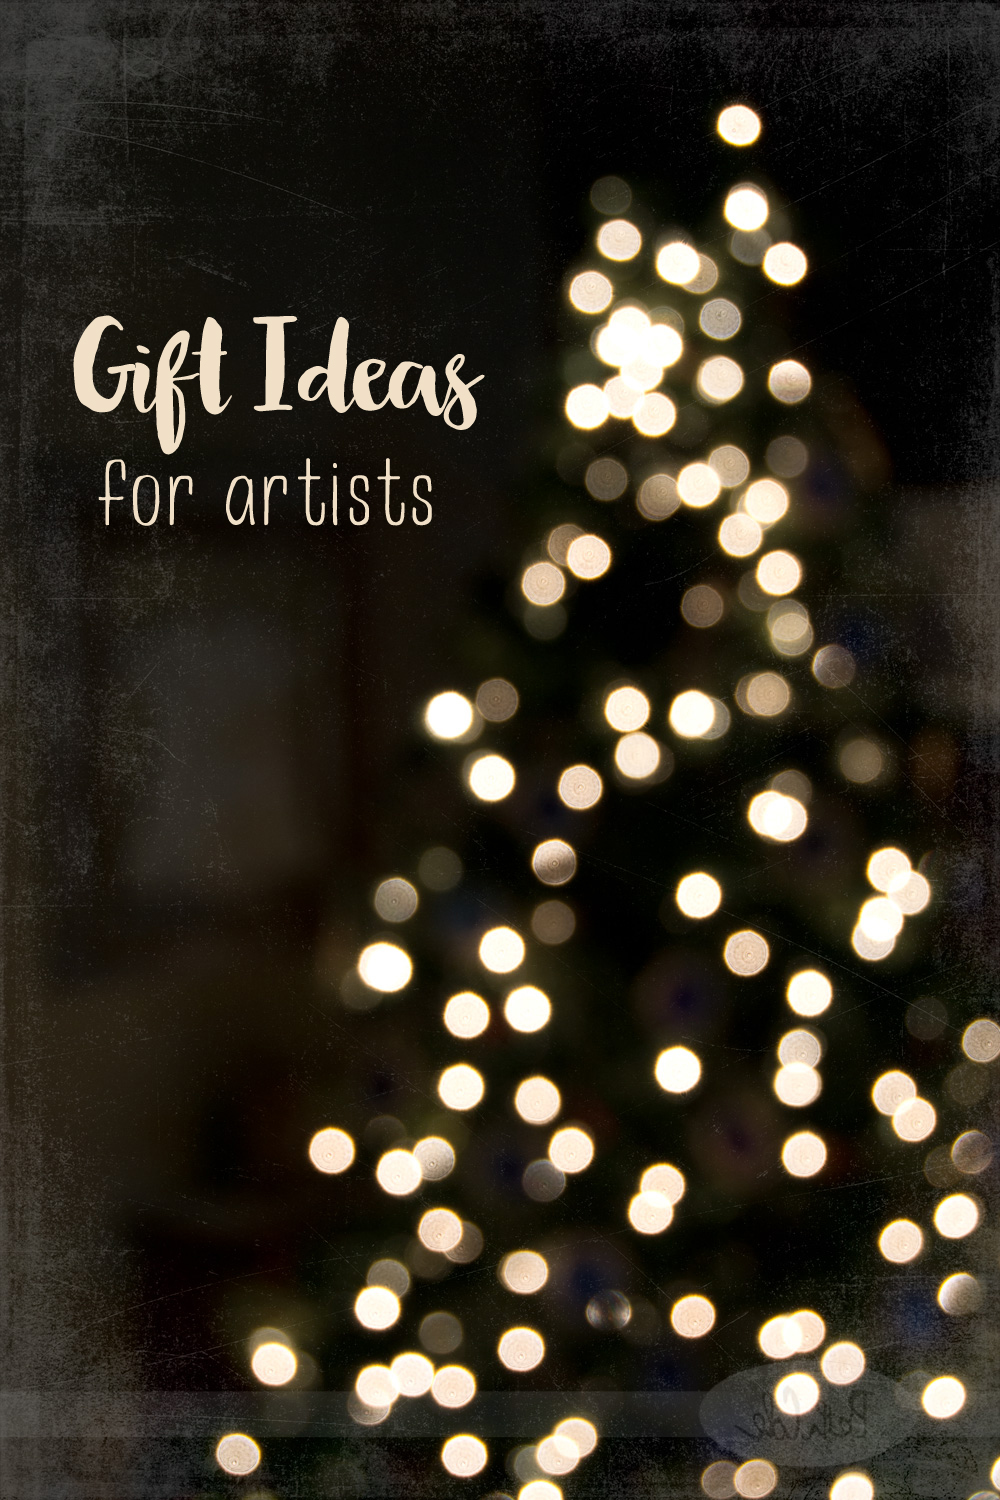 Gift Ideas for Artists, Photo ©Beth Cole